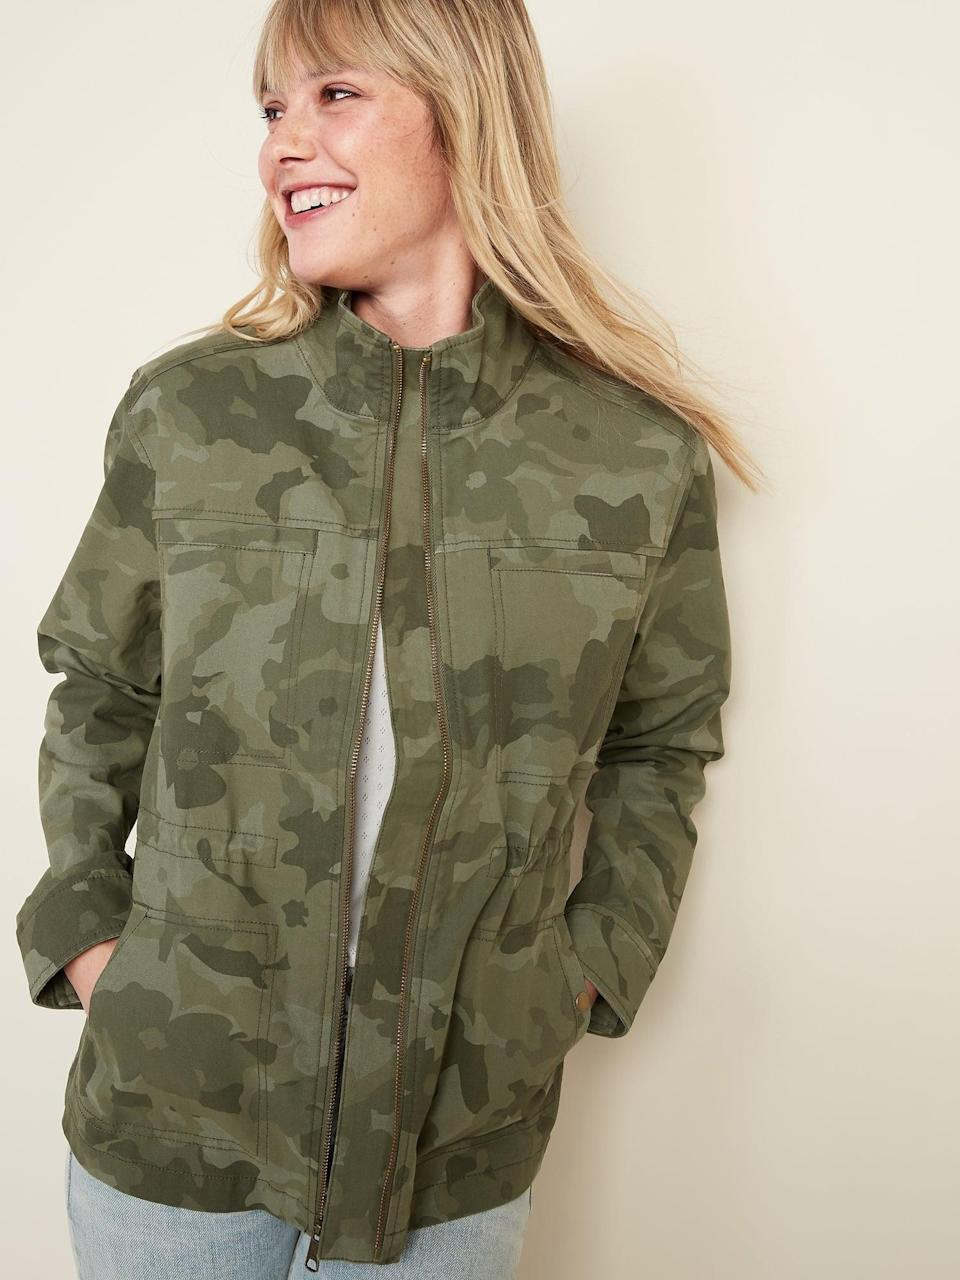 <p>The <span>Scout Utility Jacket </span> ($19, originally $50) has everything I look for. It has a relaxed fit through the body, which makes it great for fall layering; it's made of cotton so it's lightweight and I can take it off and tie it around my waist if it gets warm; and it's super stylish. </p>